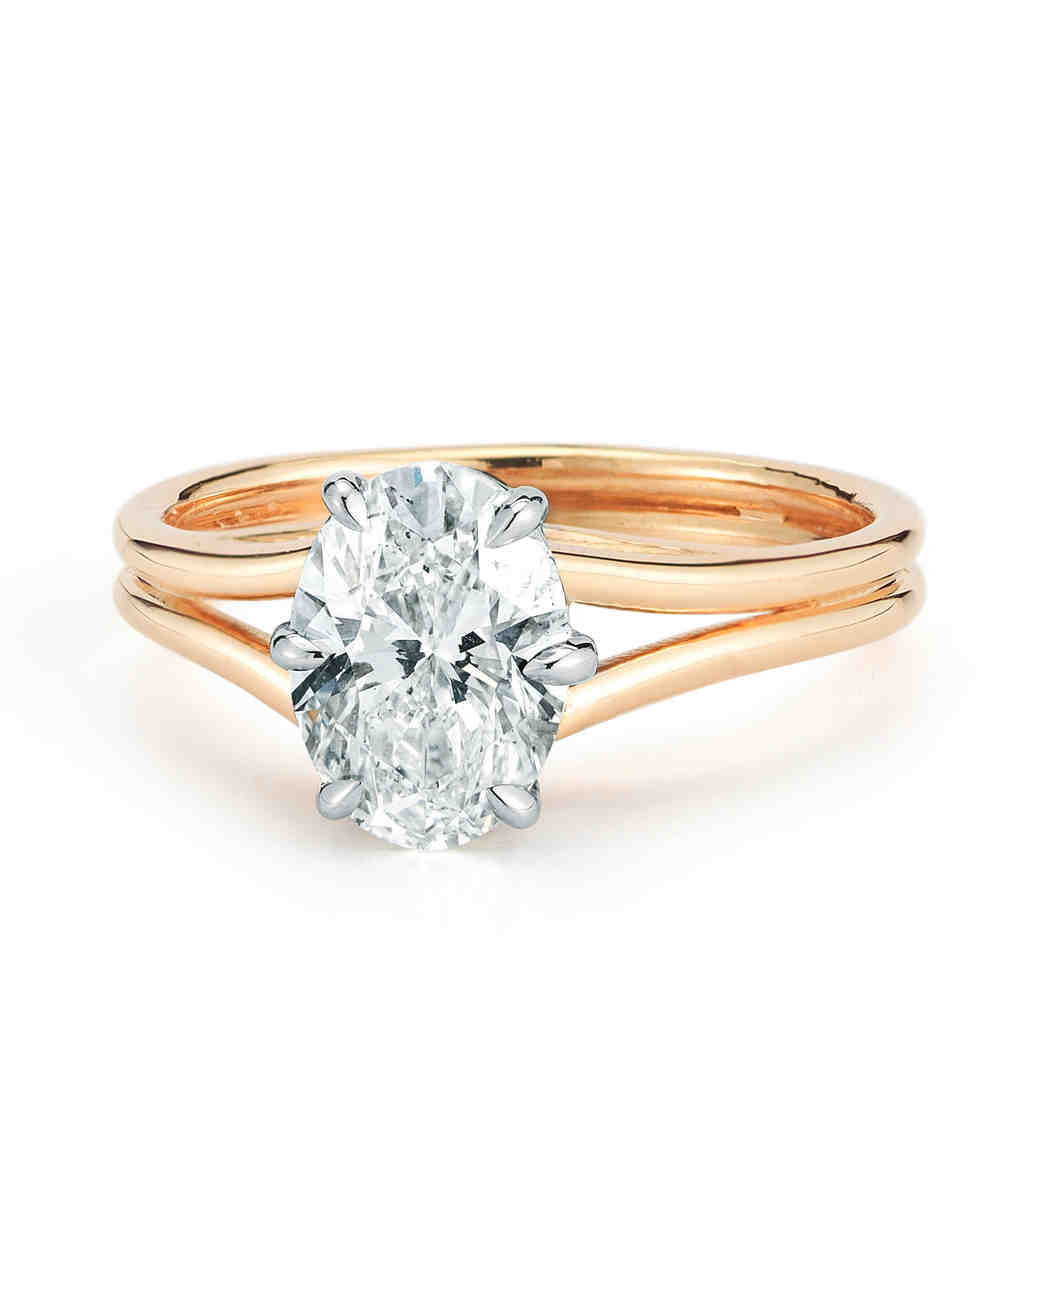 Forevermark by Jade Trau Two Tone Split Shank Solitaire Engagement Ring in Yellow Gold